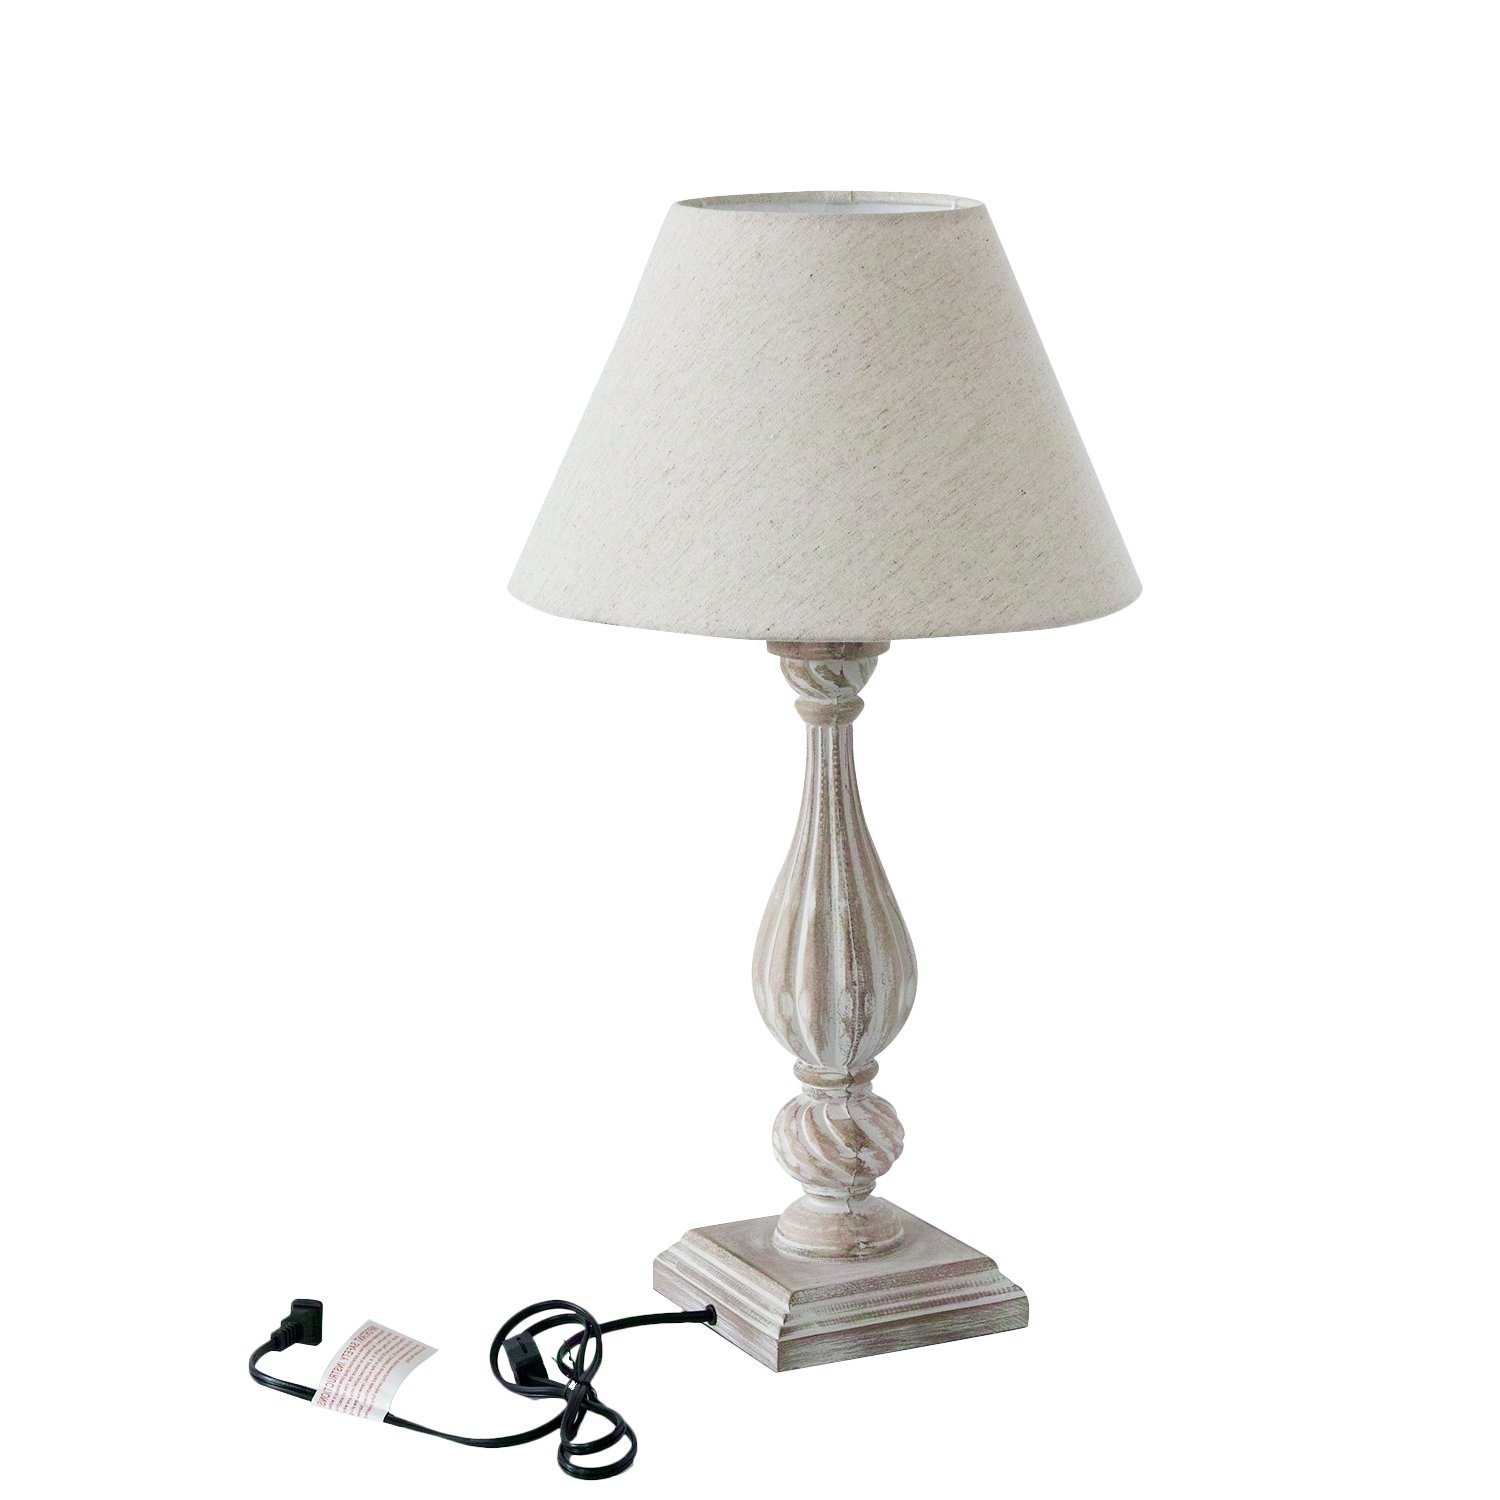 DecentHome Solid Wood Table Lamp, 25.20'' H, Distressed Finish, Ivory Shade